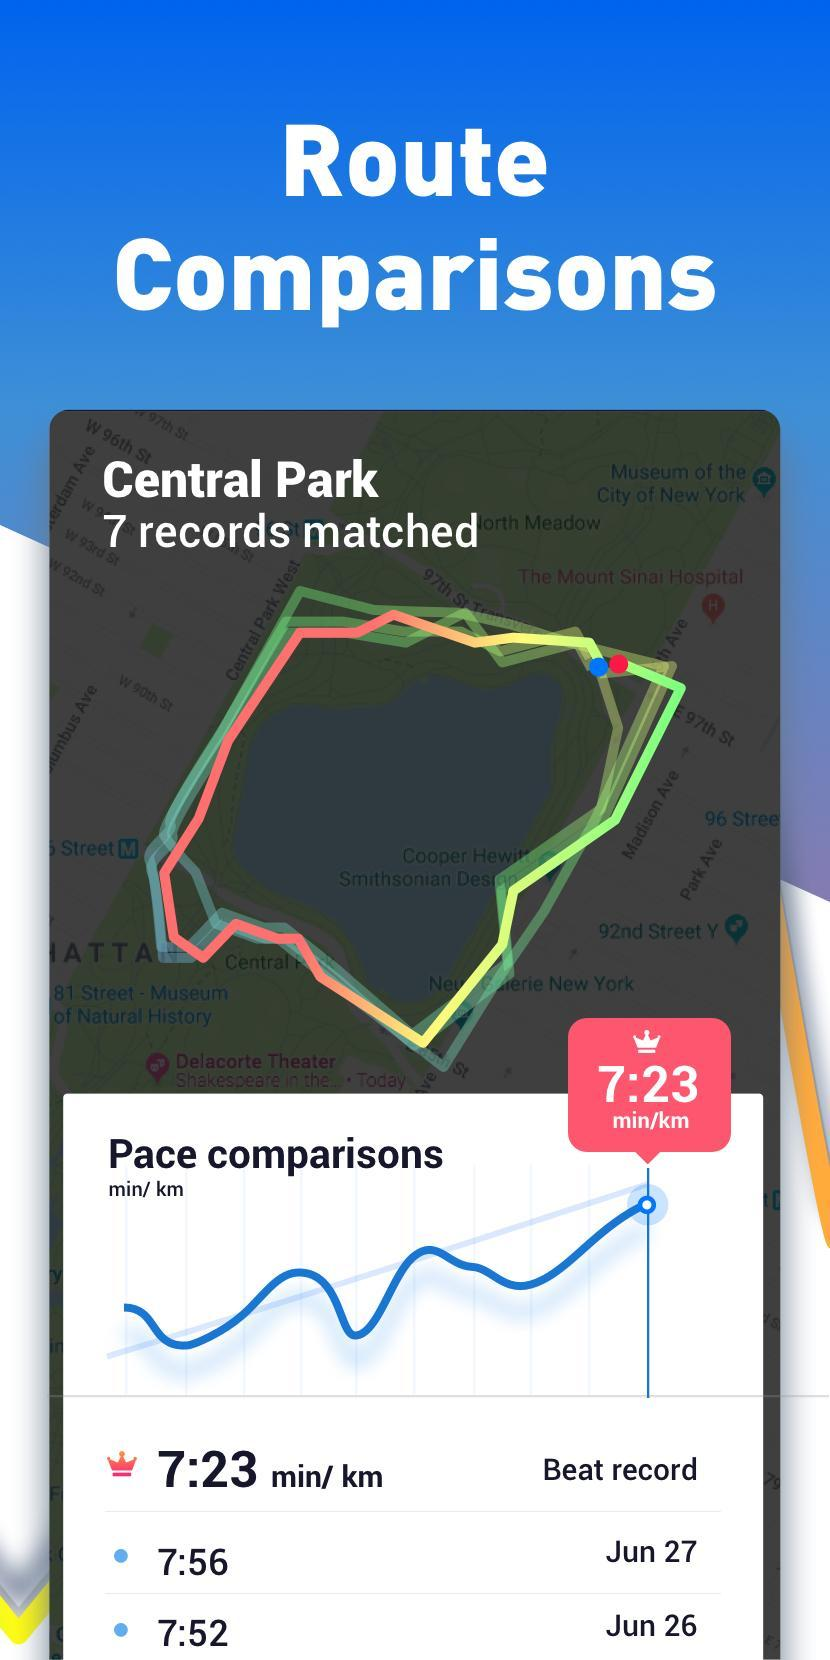 Running App: Run Tracker with GPS, Map My Running for ... on map language, map ark, map of all the states, map of appalachia, map of merrimack valley massachusetts, map features, map travel, map from point to point, map of negros philippines, map of the european alps, map millbrook al, map of boulder colorado and surrounding area, map guide, map directions point to point, map google, map data, map math, map of london 1880, map london south kensington, map of kensington san diego,